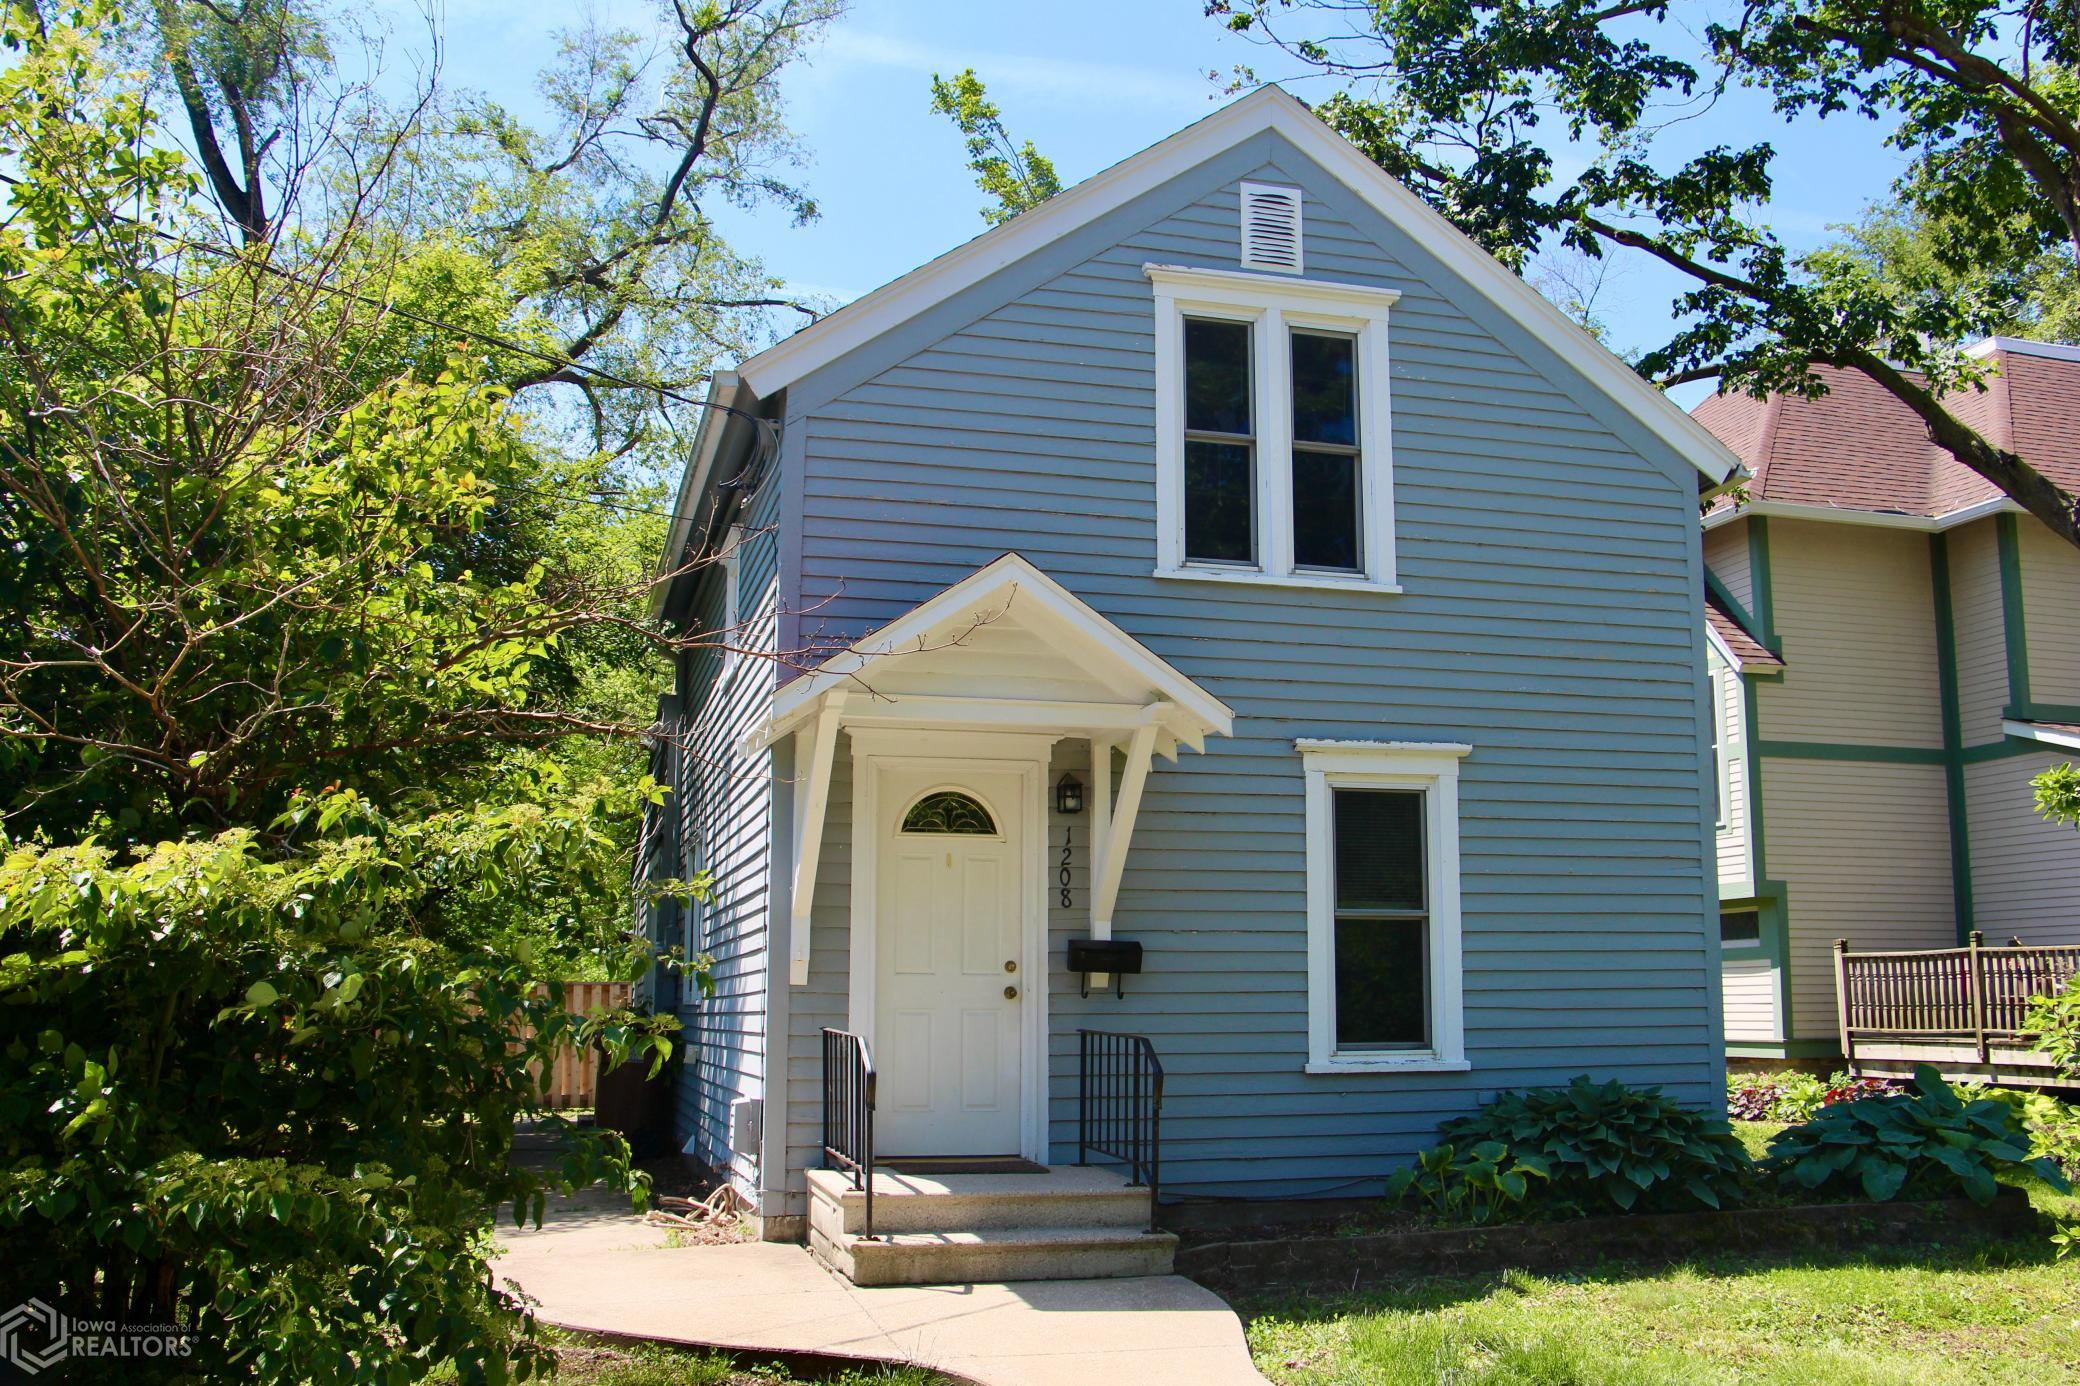 1208 3rd, Grinnell, Iowa 50112-4722, ,Single Family,For Sale,3rd,6006656